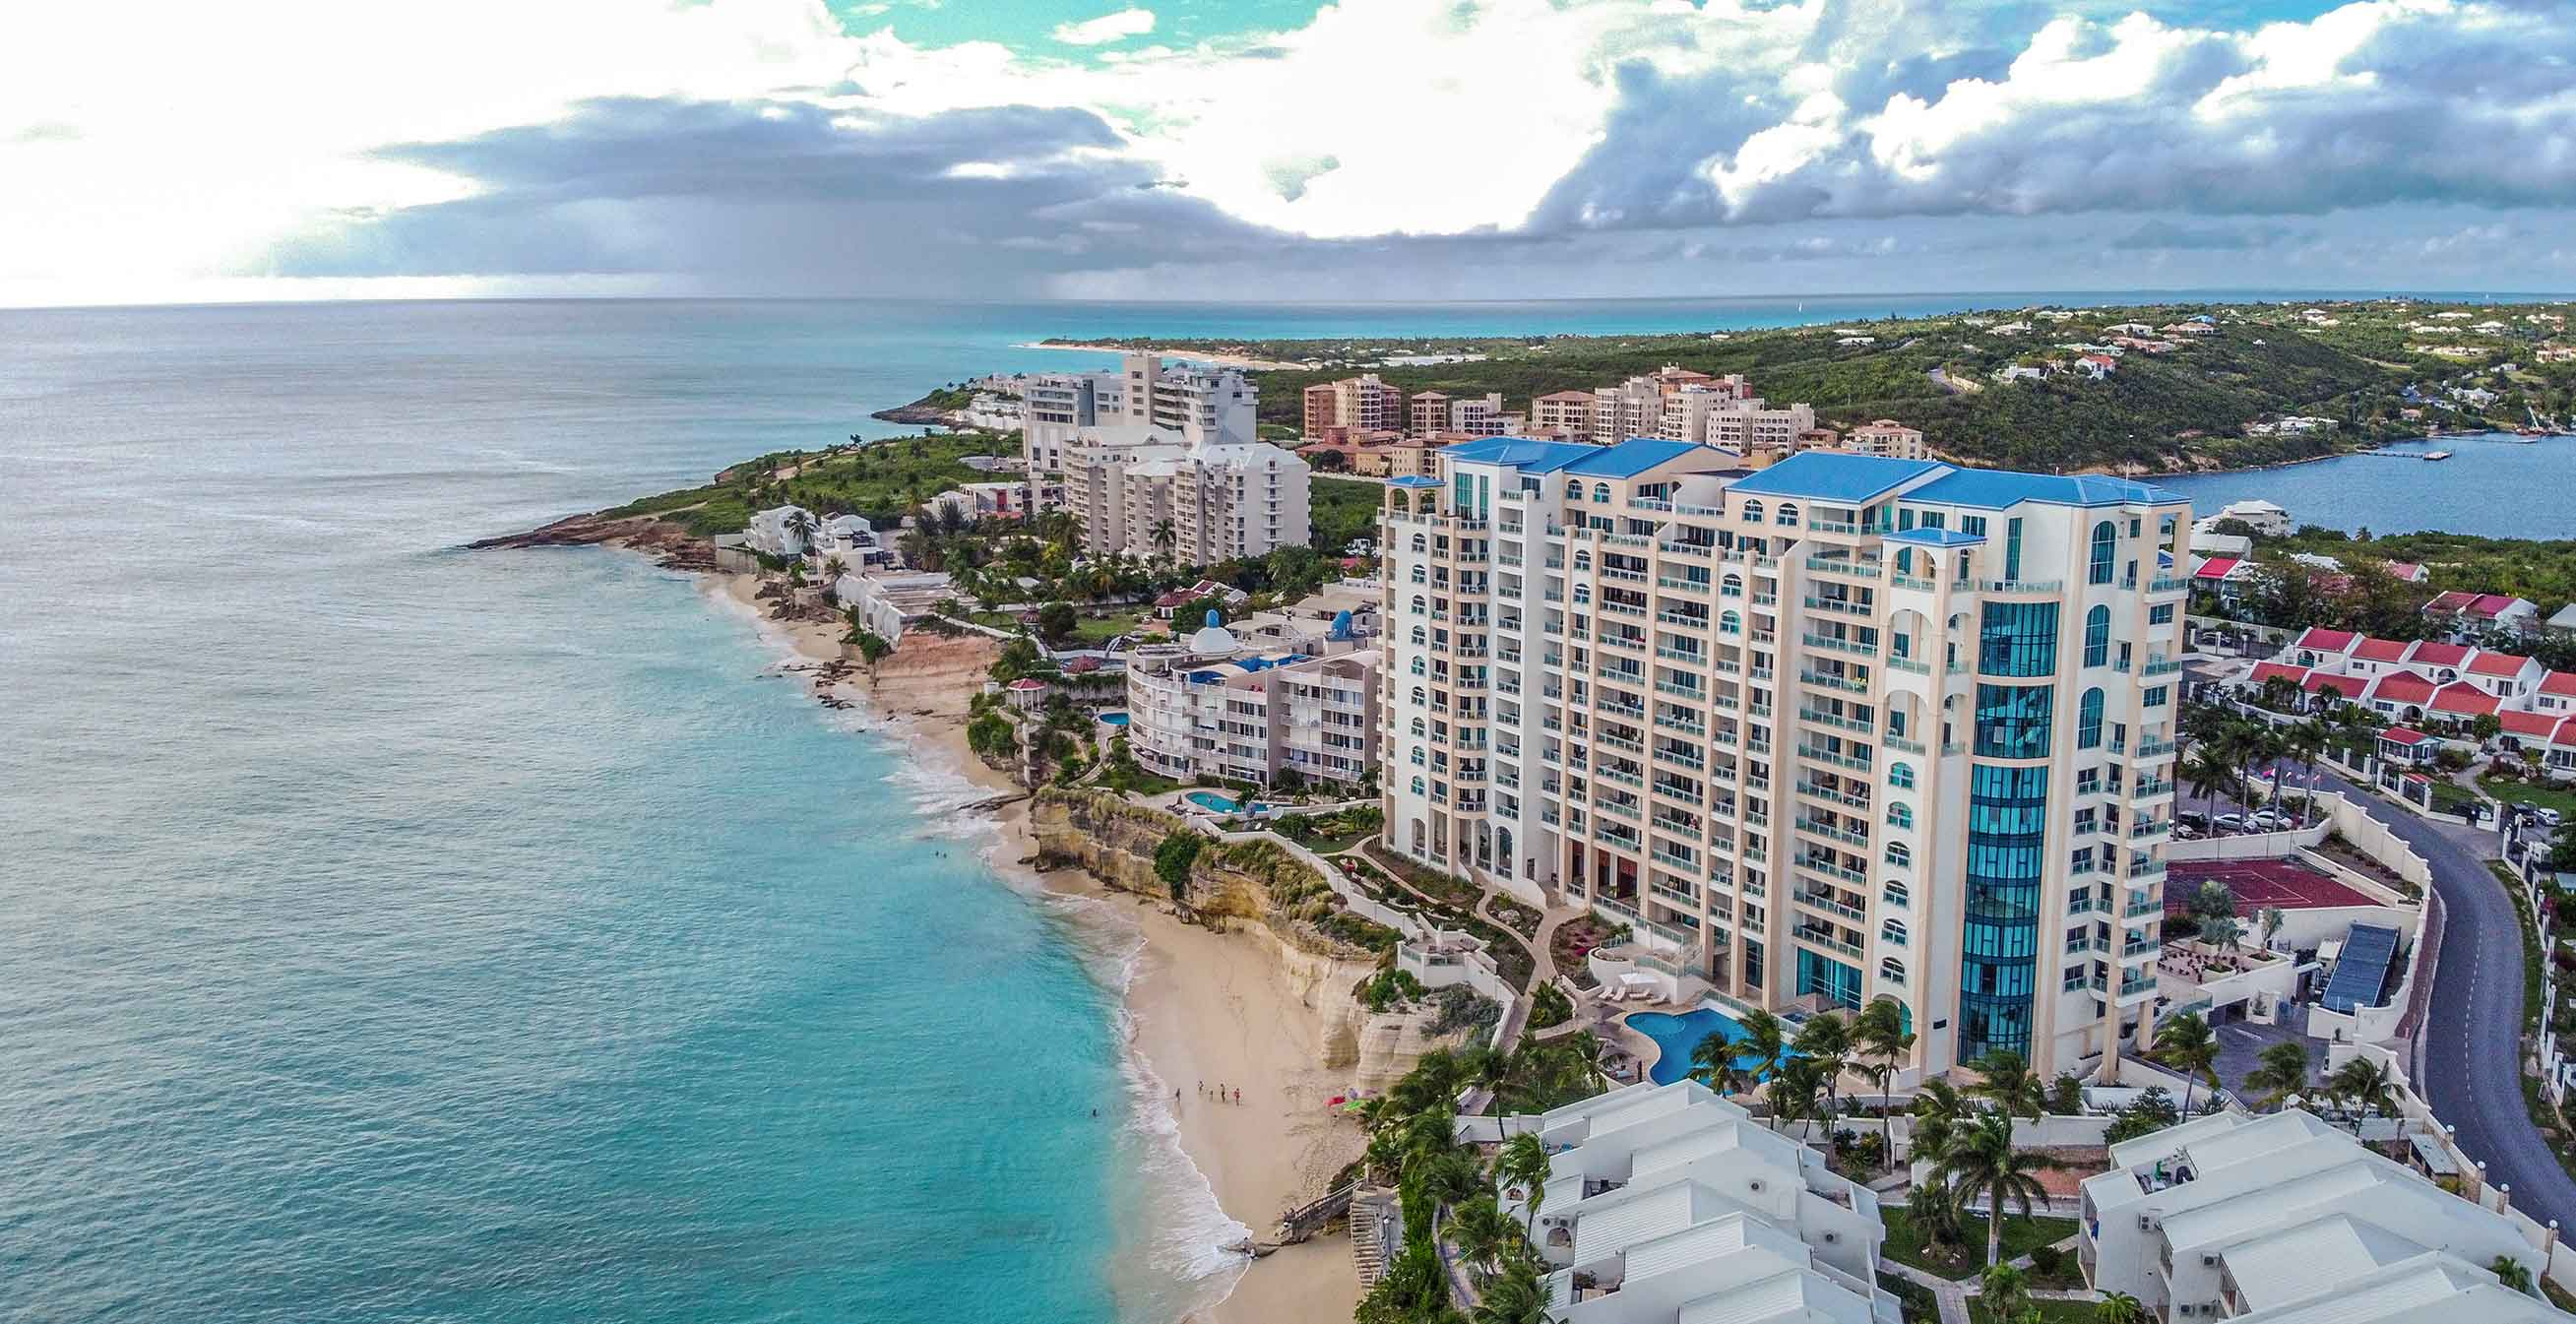 DEAL The Cliff Two Bedroom Luxury Condo For Sale